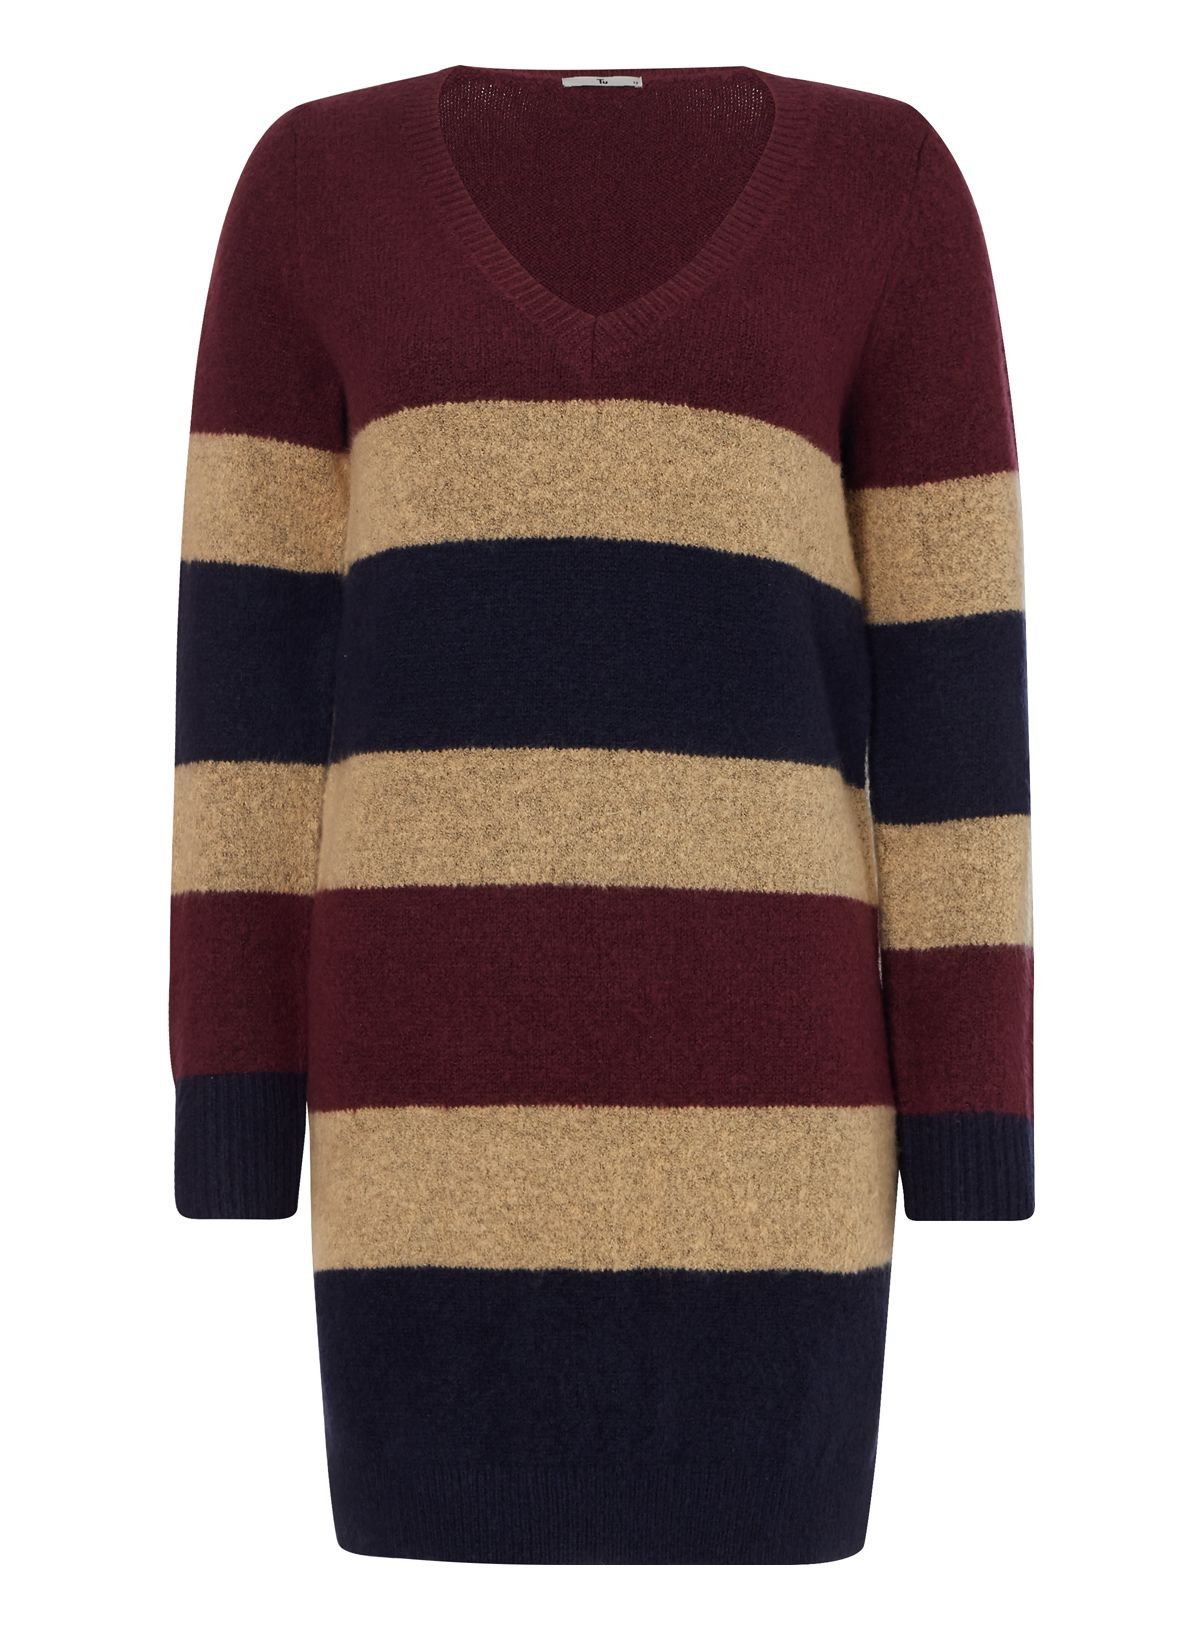 This striped tunic will become an indispensable part of your cold weather wardrobe. Designed with a V-neckline and long sleeves, this piece will team well with tan boots. Multicoloured striped v neck tunic Striped pattern V-neckline Long sleeves Side slits Model's height is 5'11